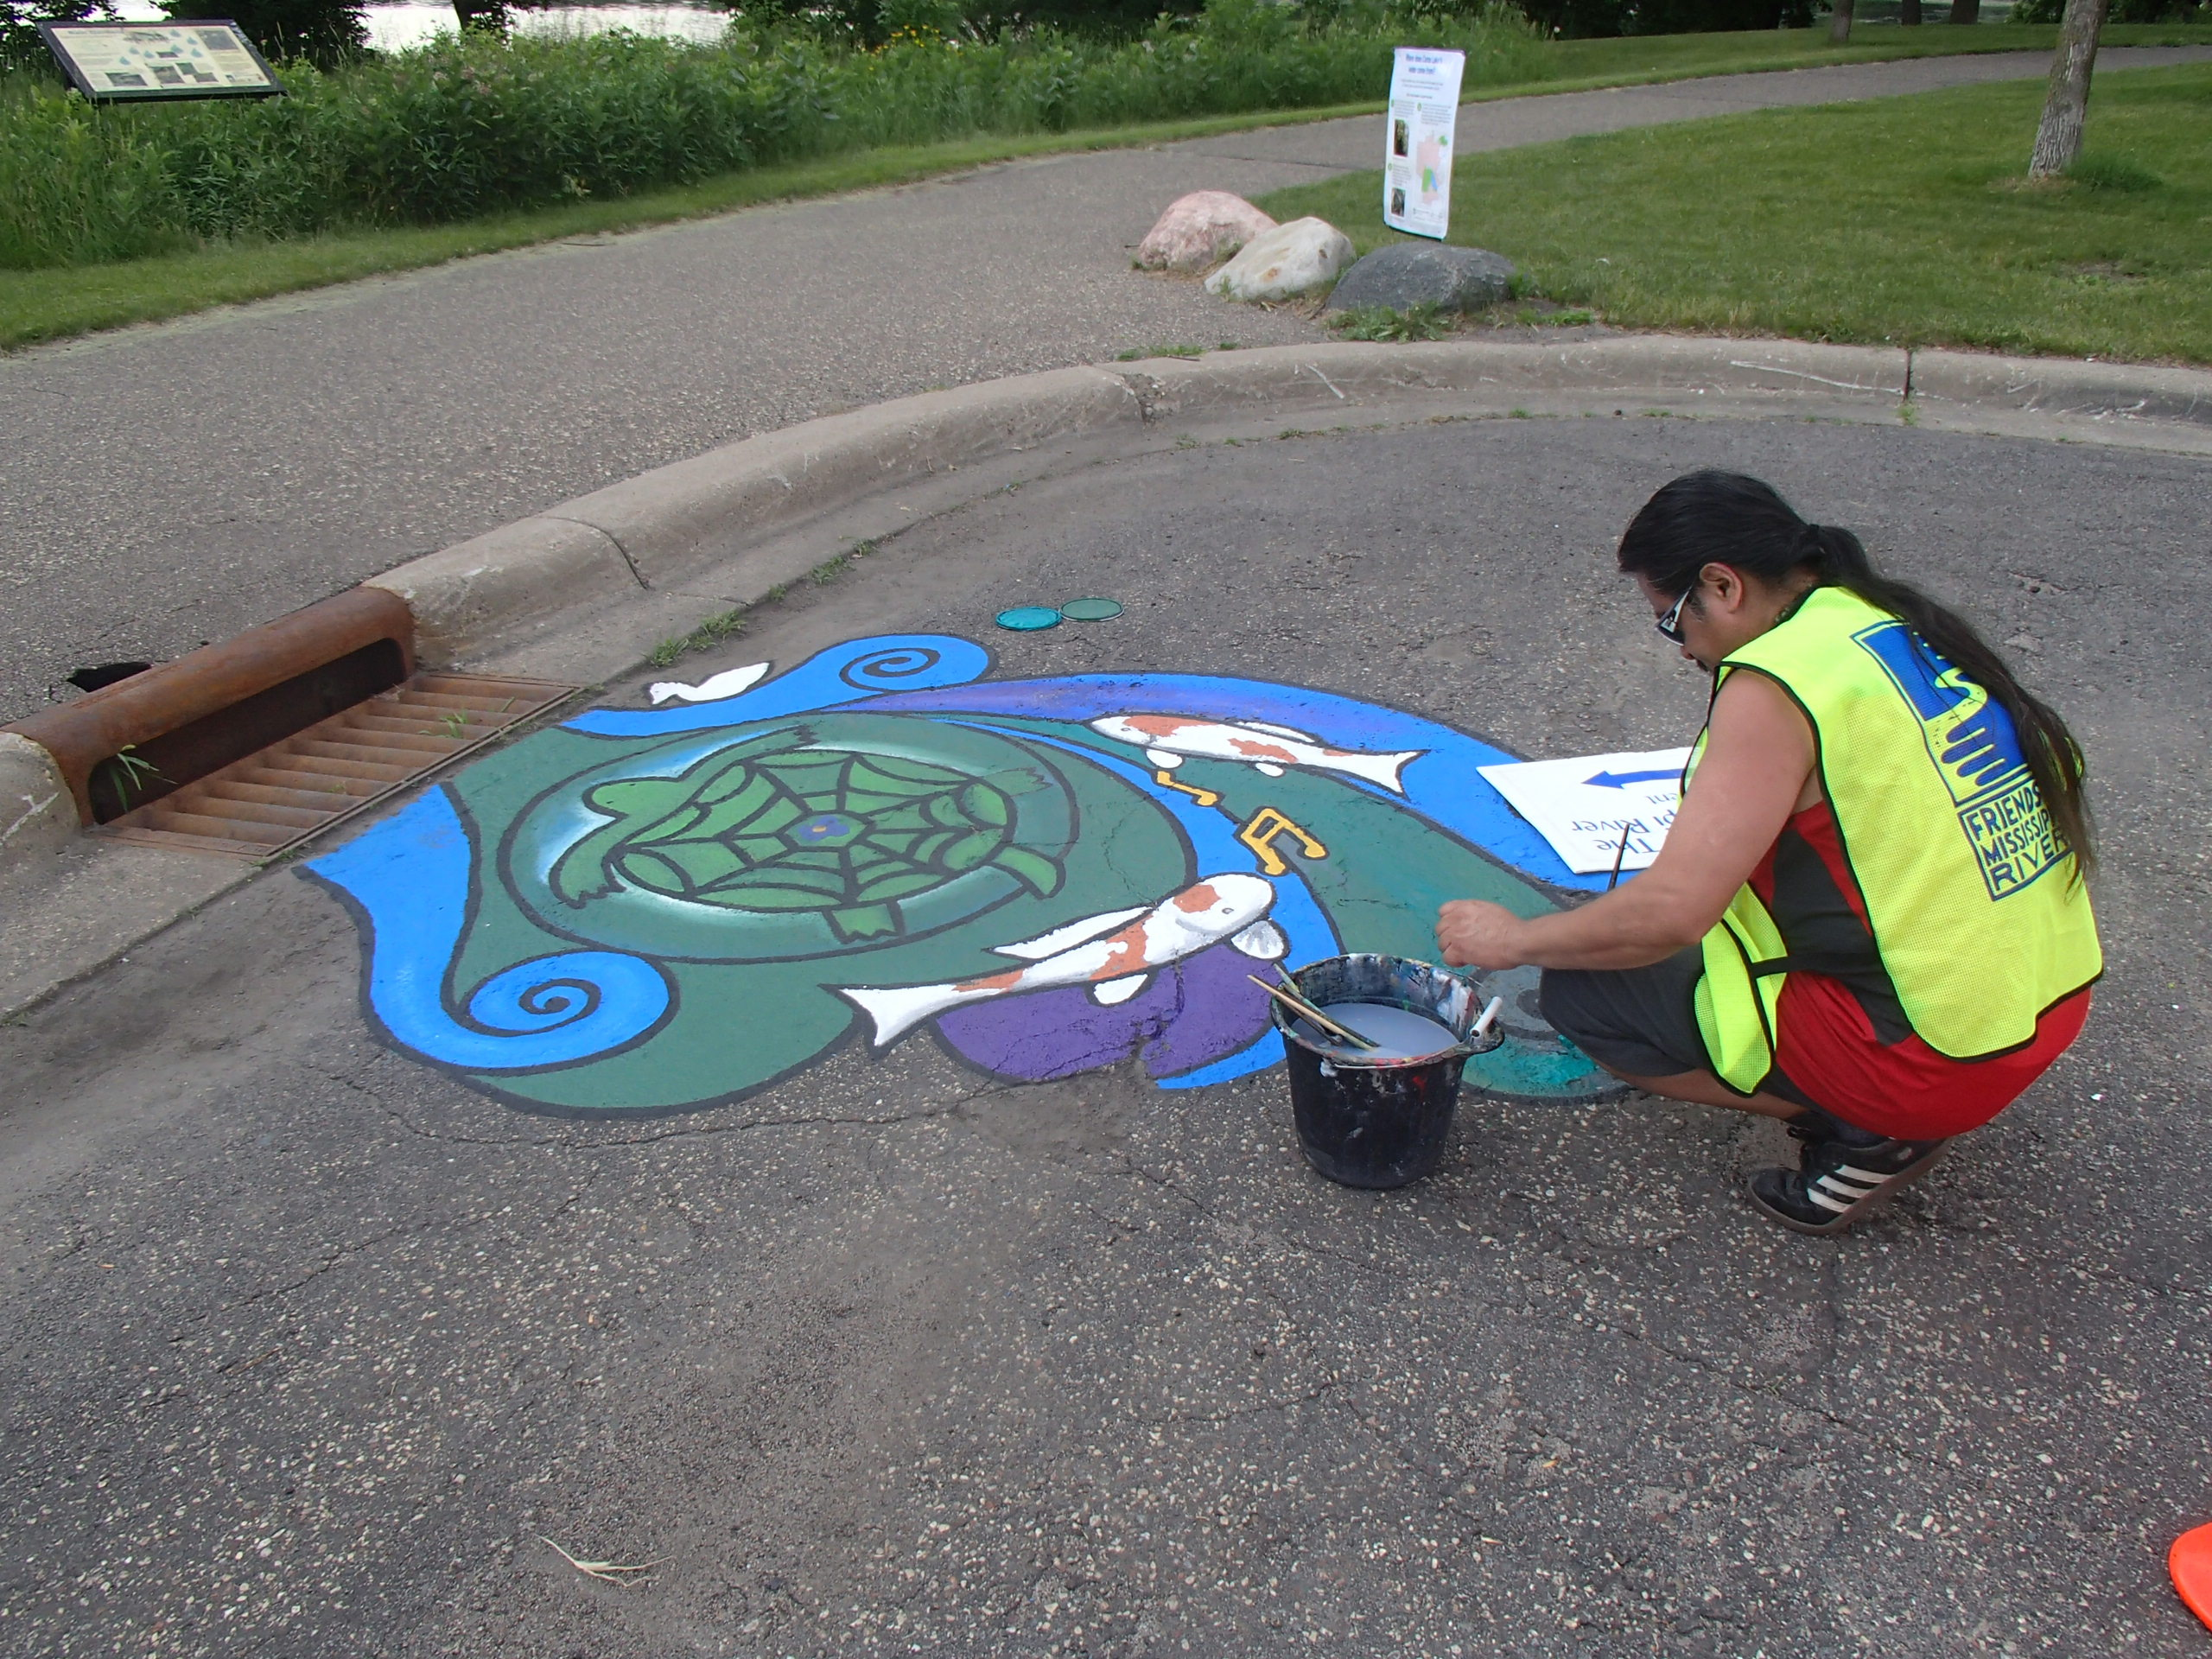 FMR's first storm drain mural depicting a snapping turtle, koi fish and musical notes